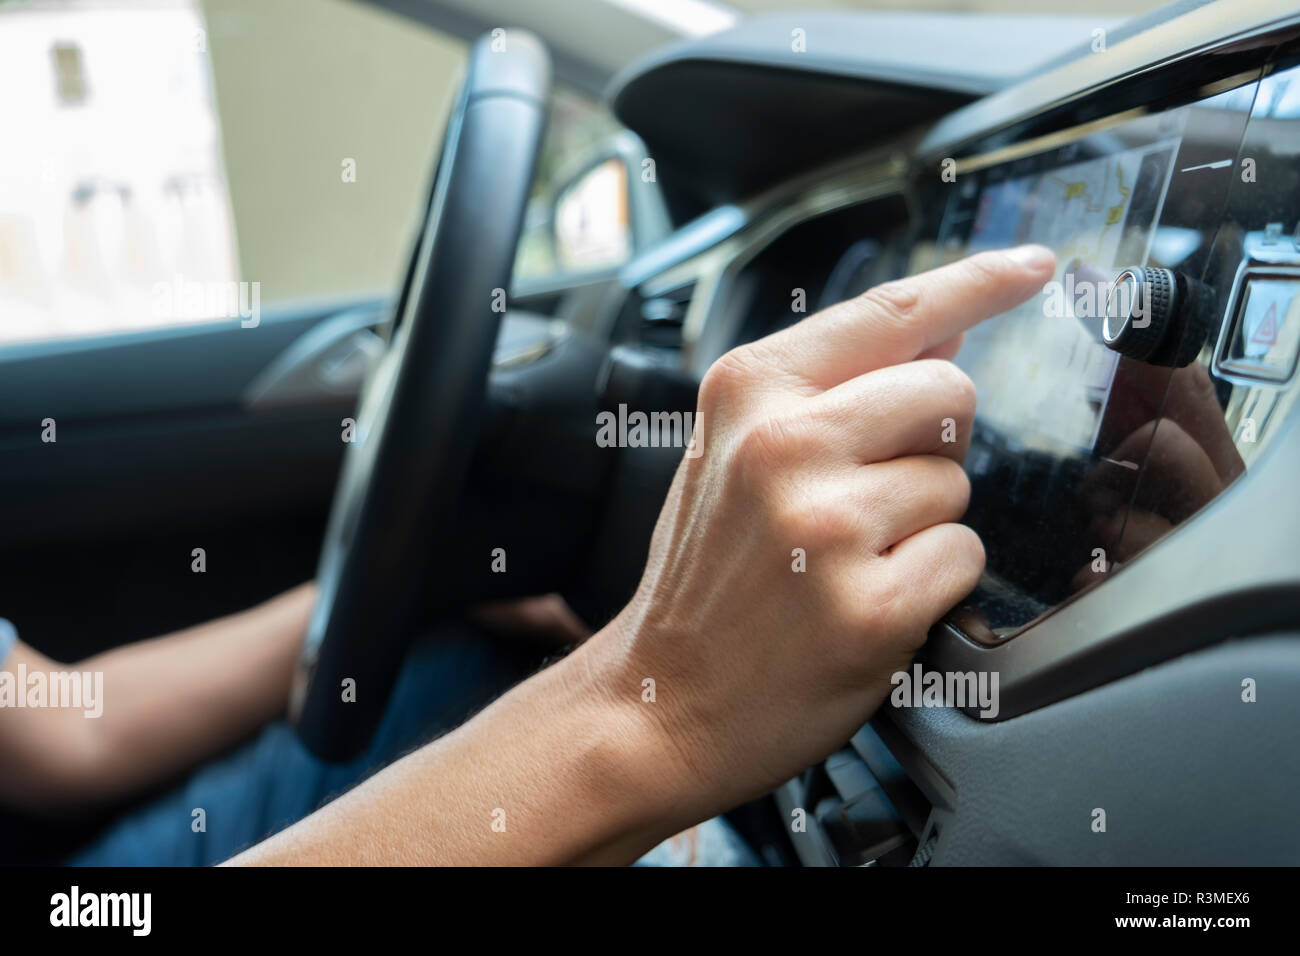 closeup of a young caucasian man using the automotive navigation system of a car - Stock Image